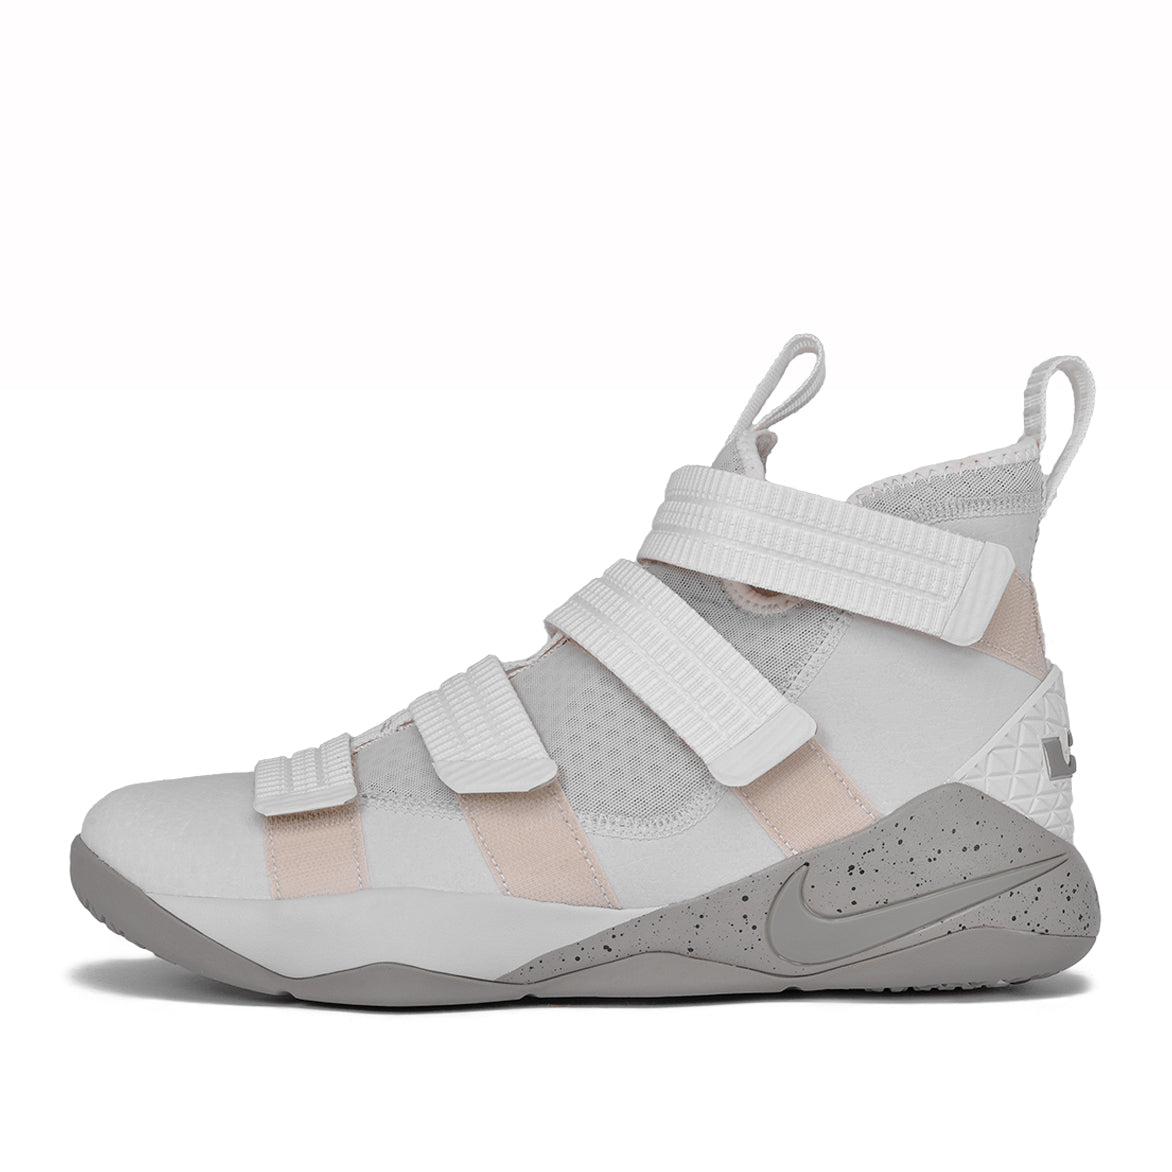 LEBRON SOLDIER XI SFG - LIGHT BONE / DARK STUCCO